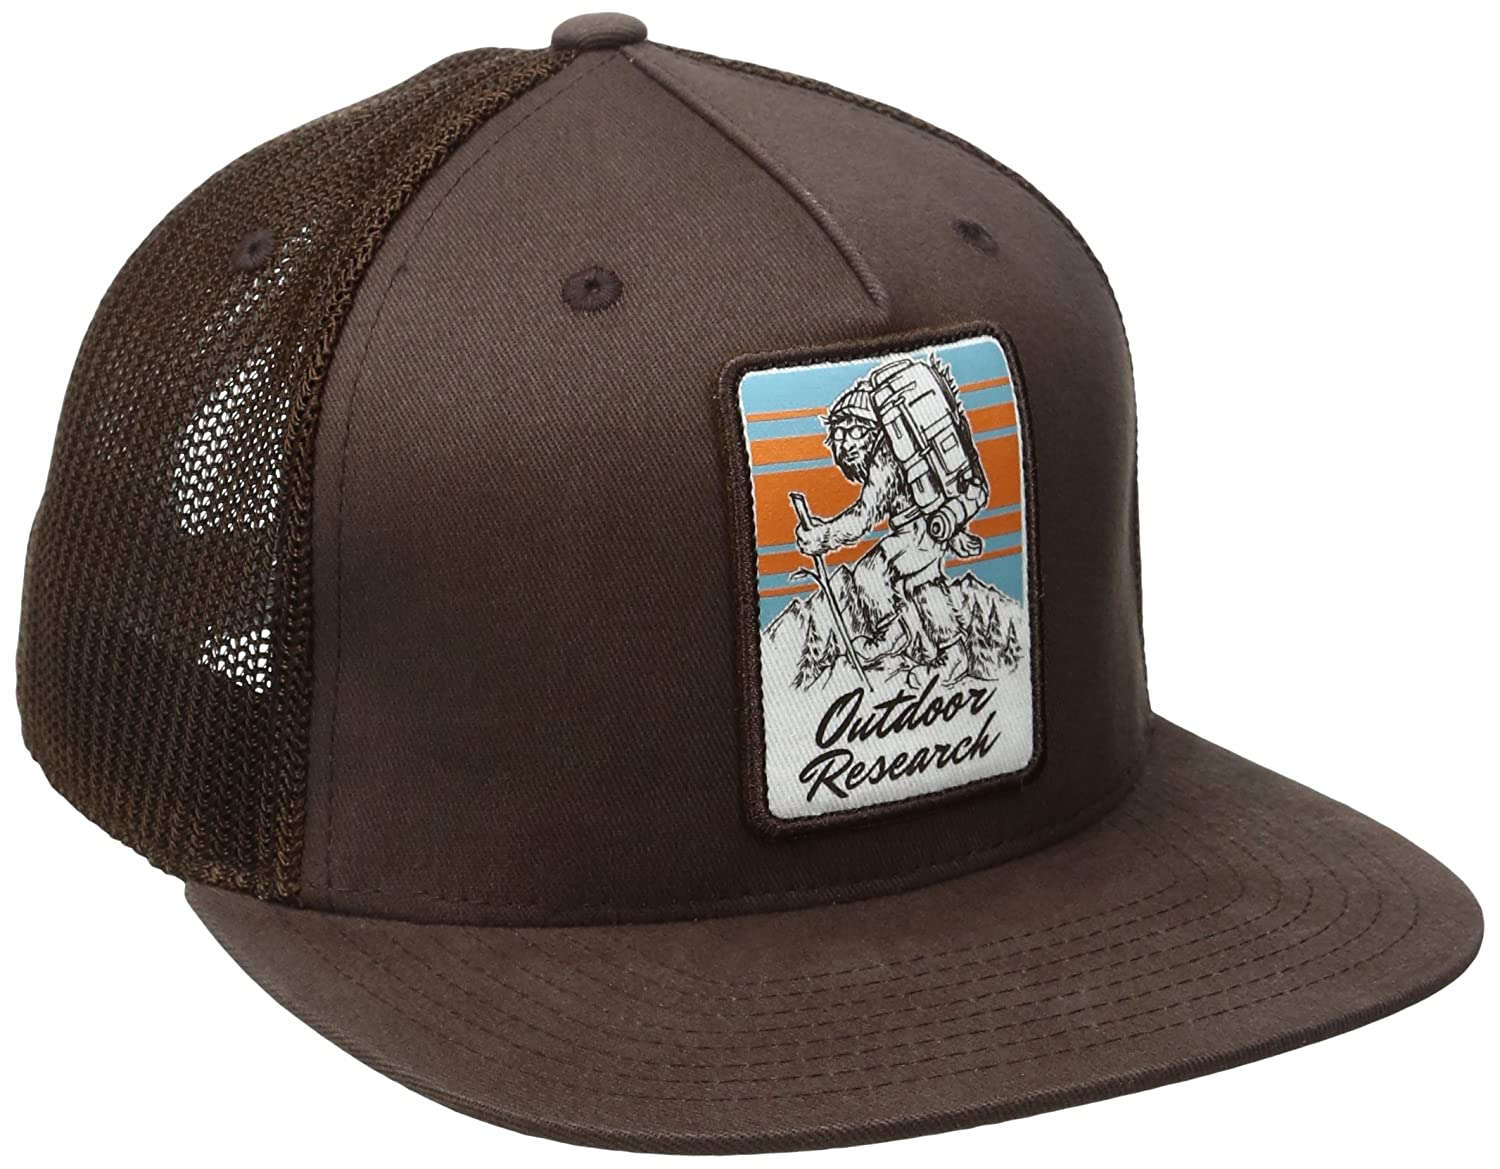 9fe1c892f10 Outdoor Research 243524 Squatchin' Trucker Cap, One Size, Earth: Amazon.ca:  Sports & Outdoors